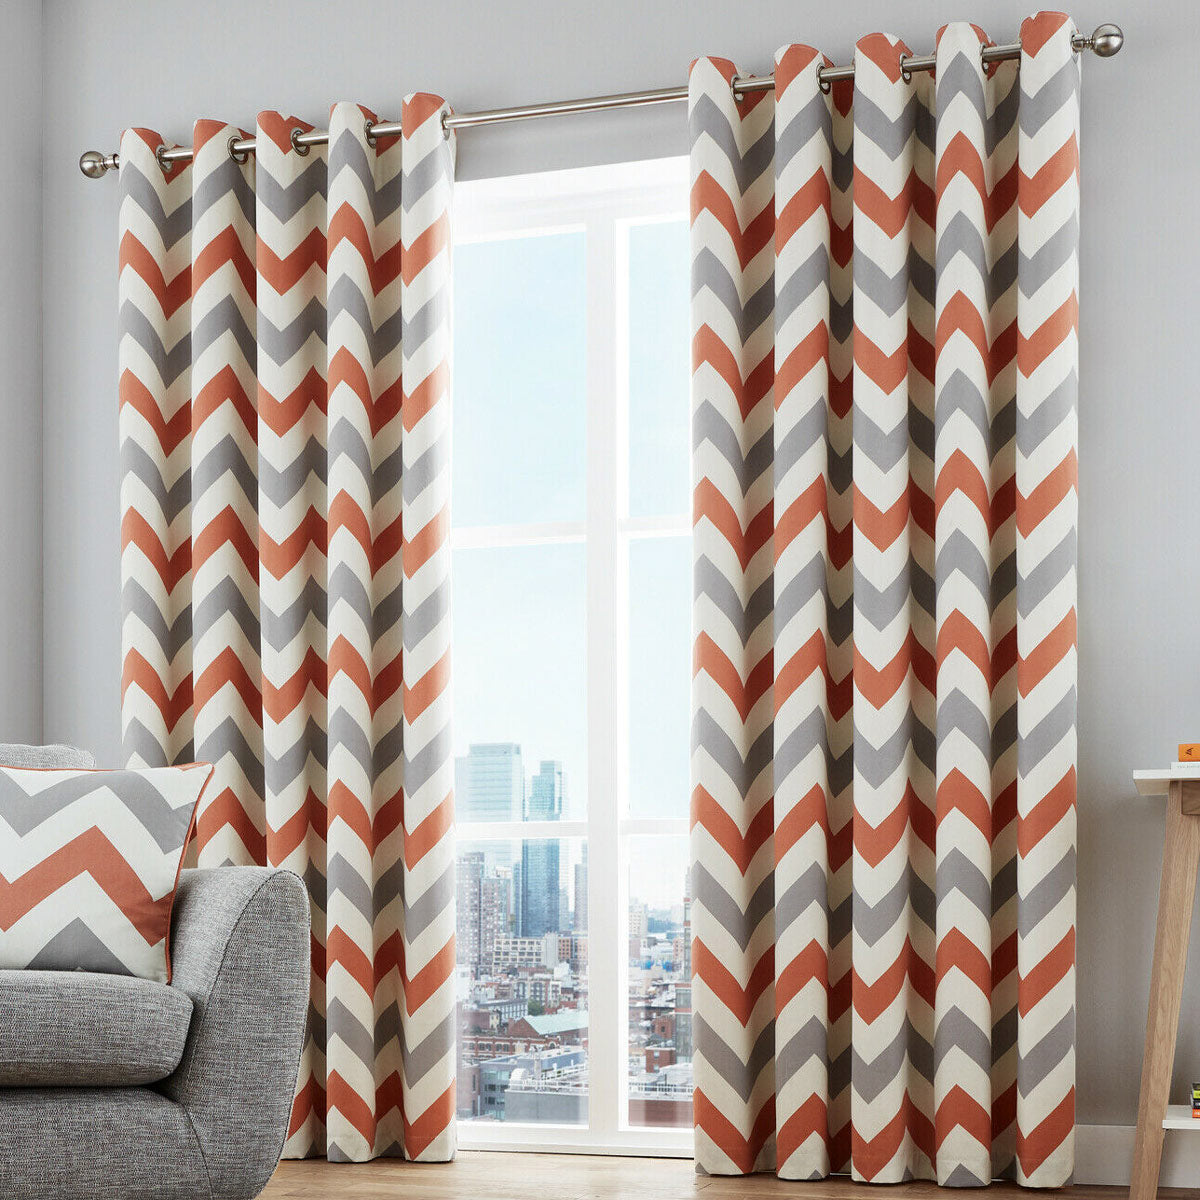 Chevron Stripe Lined Eyelet Curtains Terracotta - 46'' x 54'' - Ideal Textiles